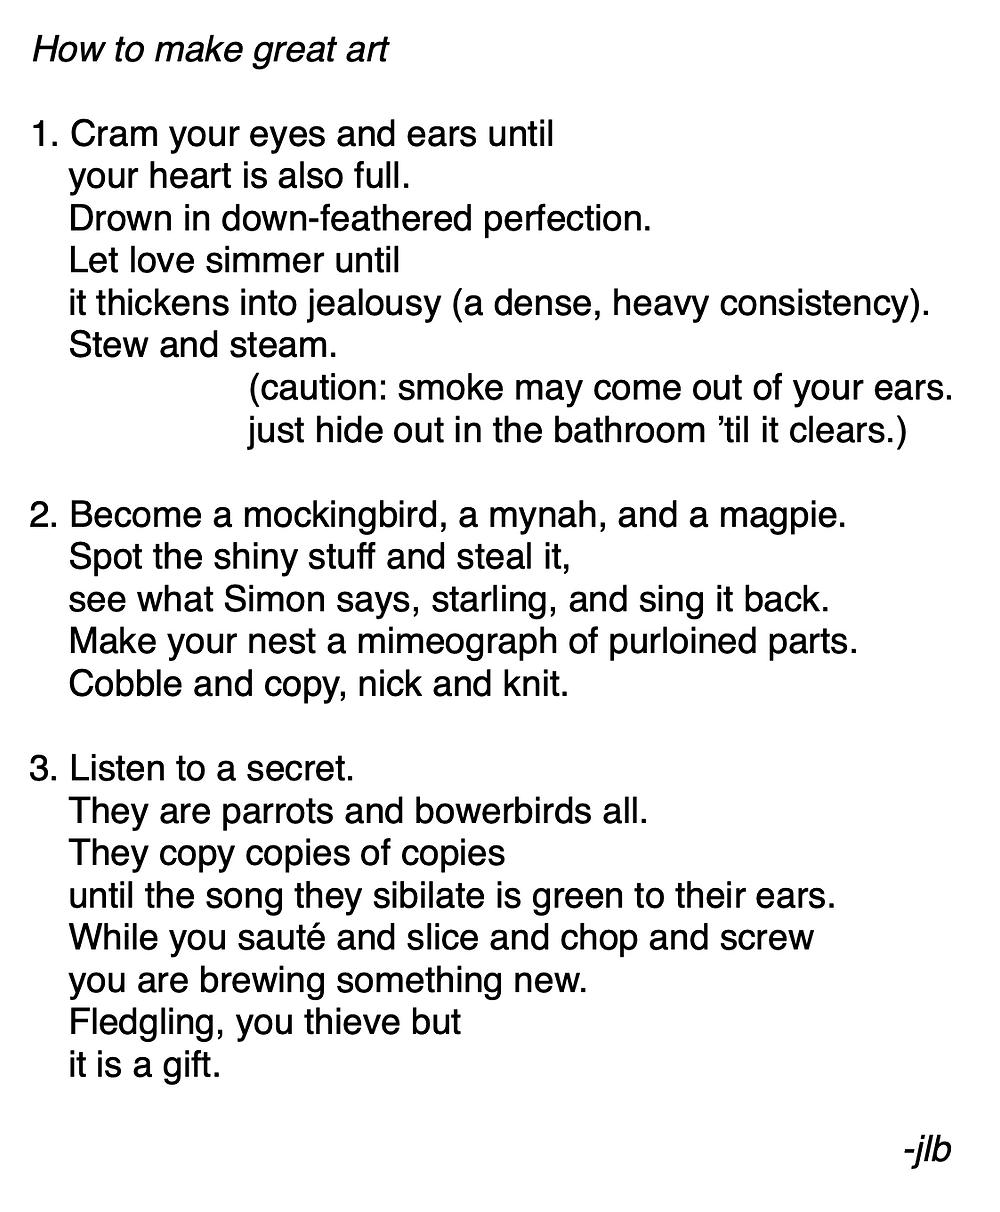 How to make great art //  1. Cram your eyes and ears until  /   your heart is also full.  /    Drown in down-feathered perfection.  /   Let love simmer until /    it thickens into jealousy (a dense, heavy consistency).   /  Stew and steam.  /         (caution: smoke may come out of your ears.     /      just hide out in the bathroom 'til it clears.) / 2. Become a mockingbird, a mynah, and a magpie.  /   Spot the shiny stuff and steal it, /    see what Simon says, starling, and sing it back.  /   Make your nest a mimeograph of purloined parts. /    Cobble and copy, nick and knit. / 3. Listen to a secret.  /   They are parrots and bowerbirds all. /    They copy copies of copies /    until the song they sibilate is green to their ears.  /   While you sauté and slice and chop and screw   /  you are brewing something new.  /   Fledgling, you thieve but  /   it is a gift.